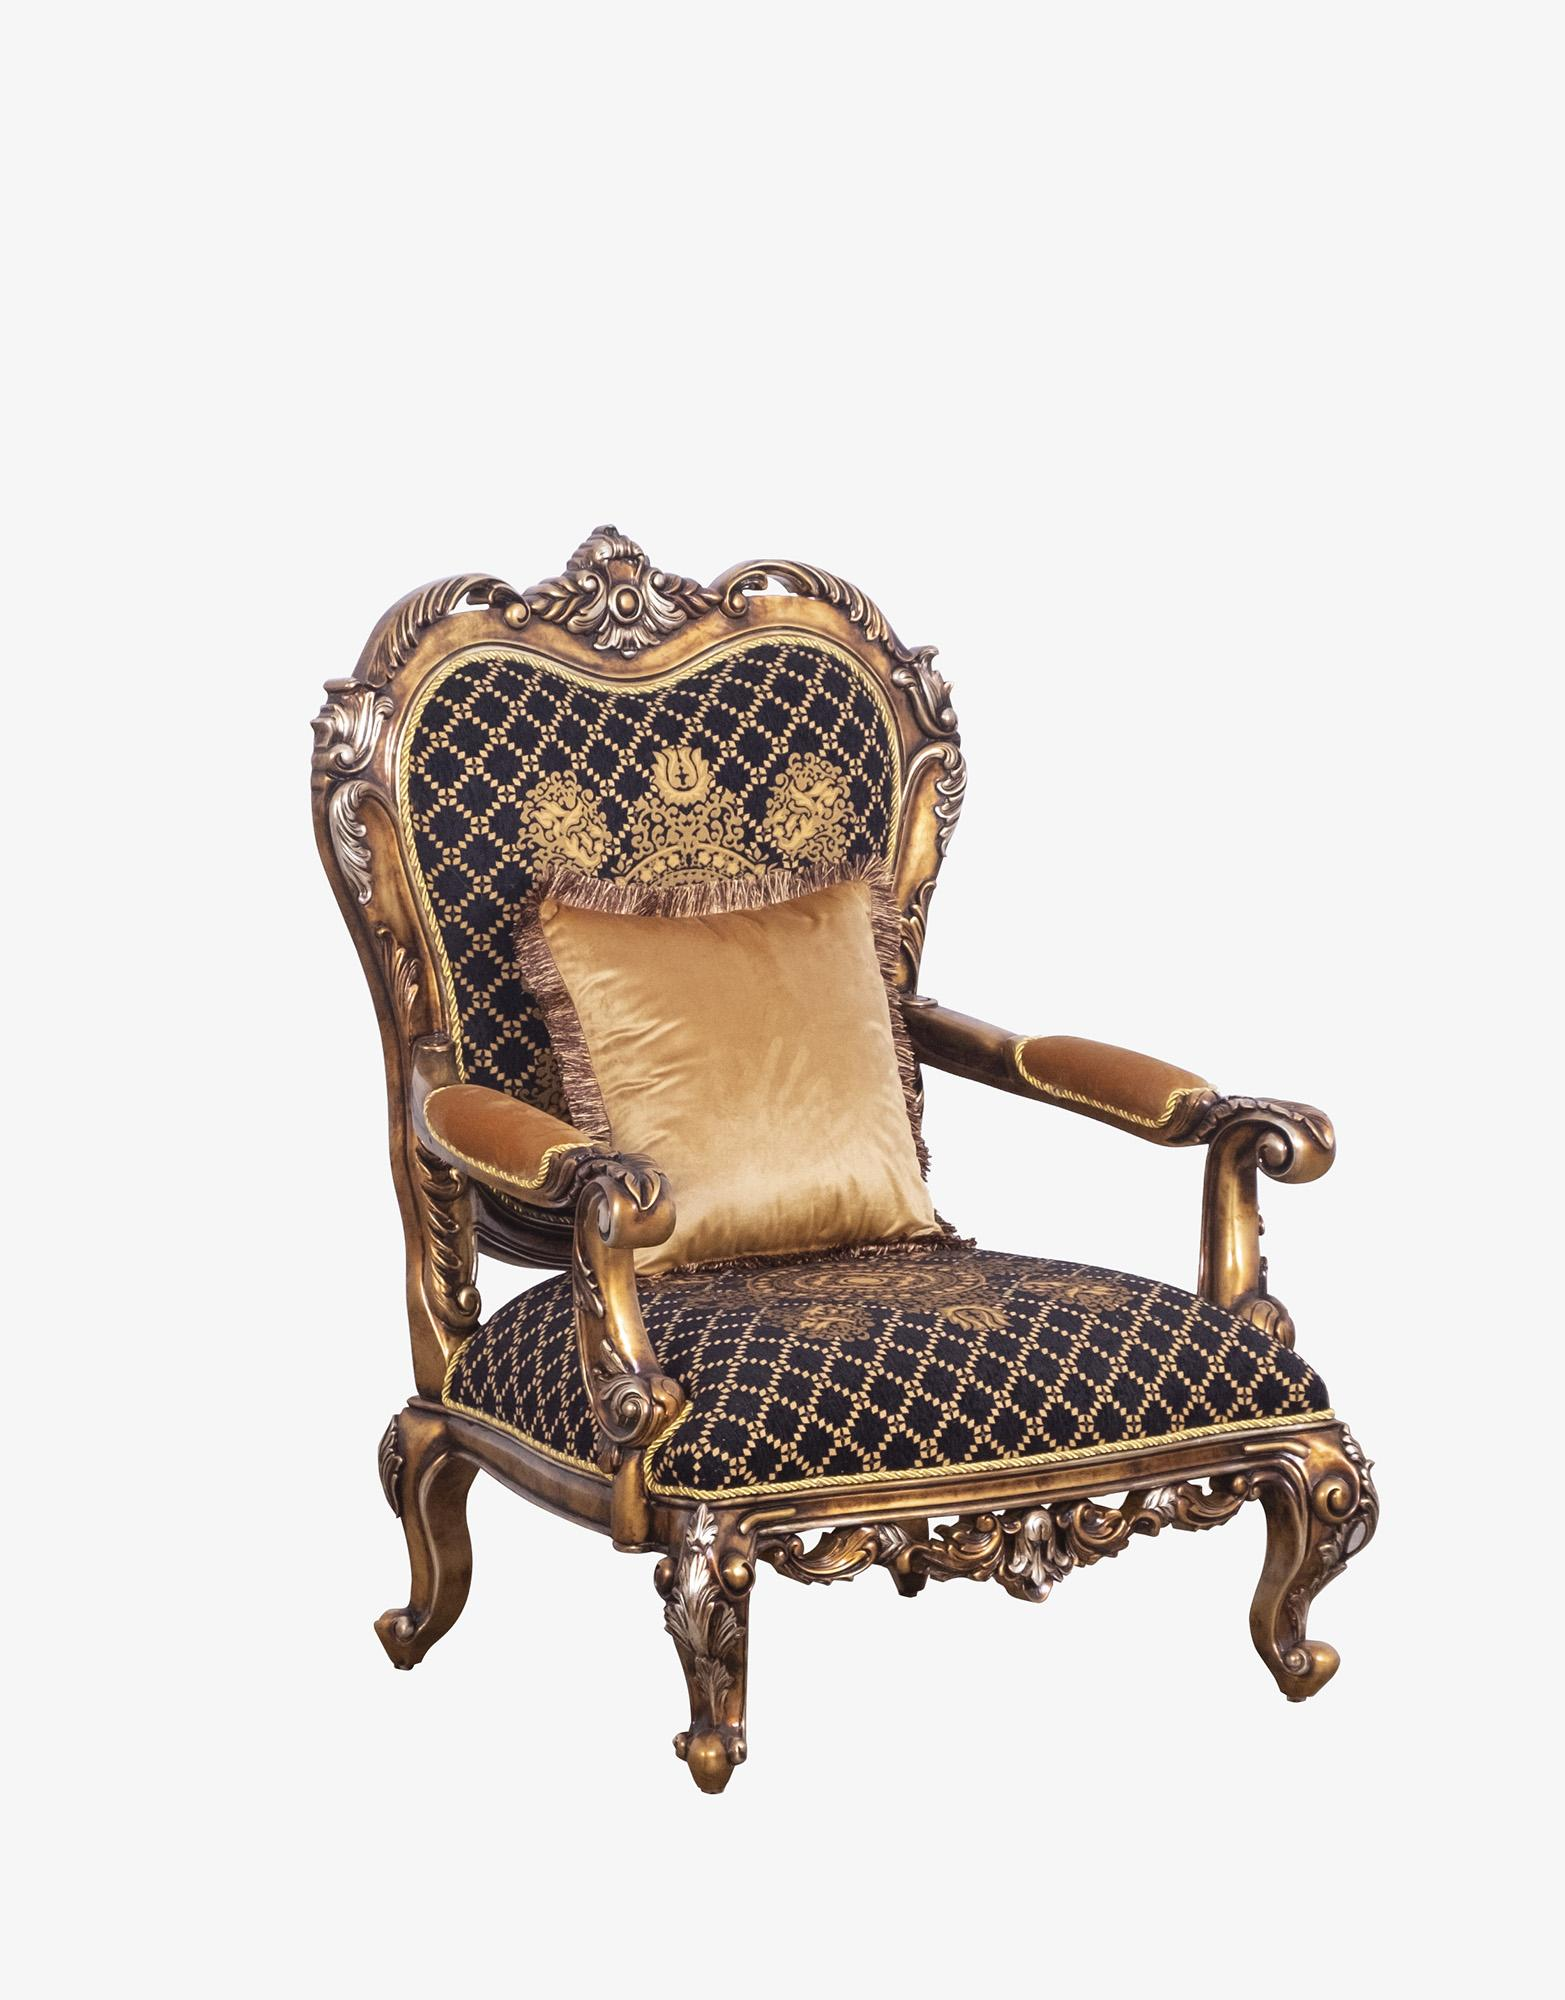 Classic  Traditional Black  Bronze  Gold Wood  Solid Hardwood and Fabric Arm Chair EUROPEAN FURNITURE 44697-C